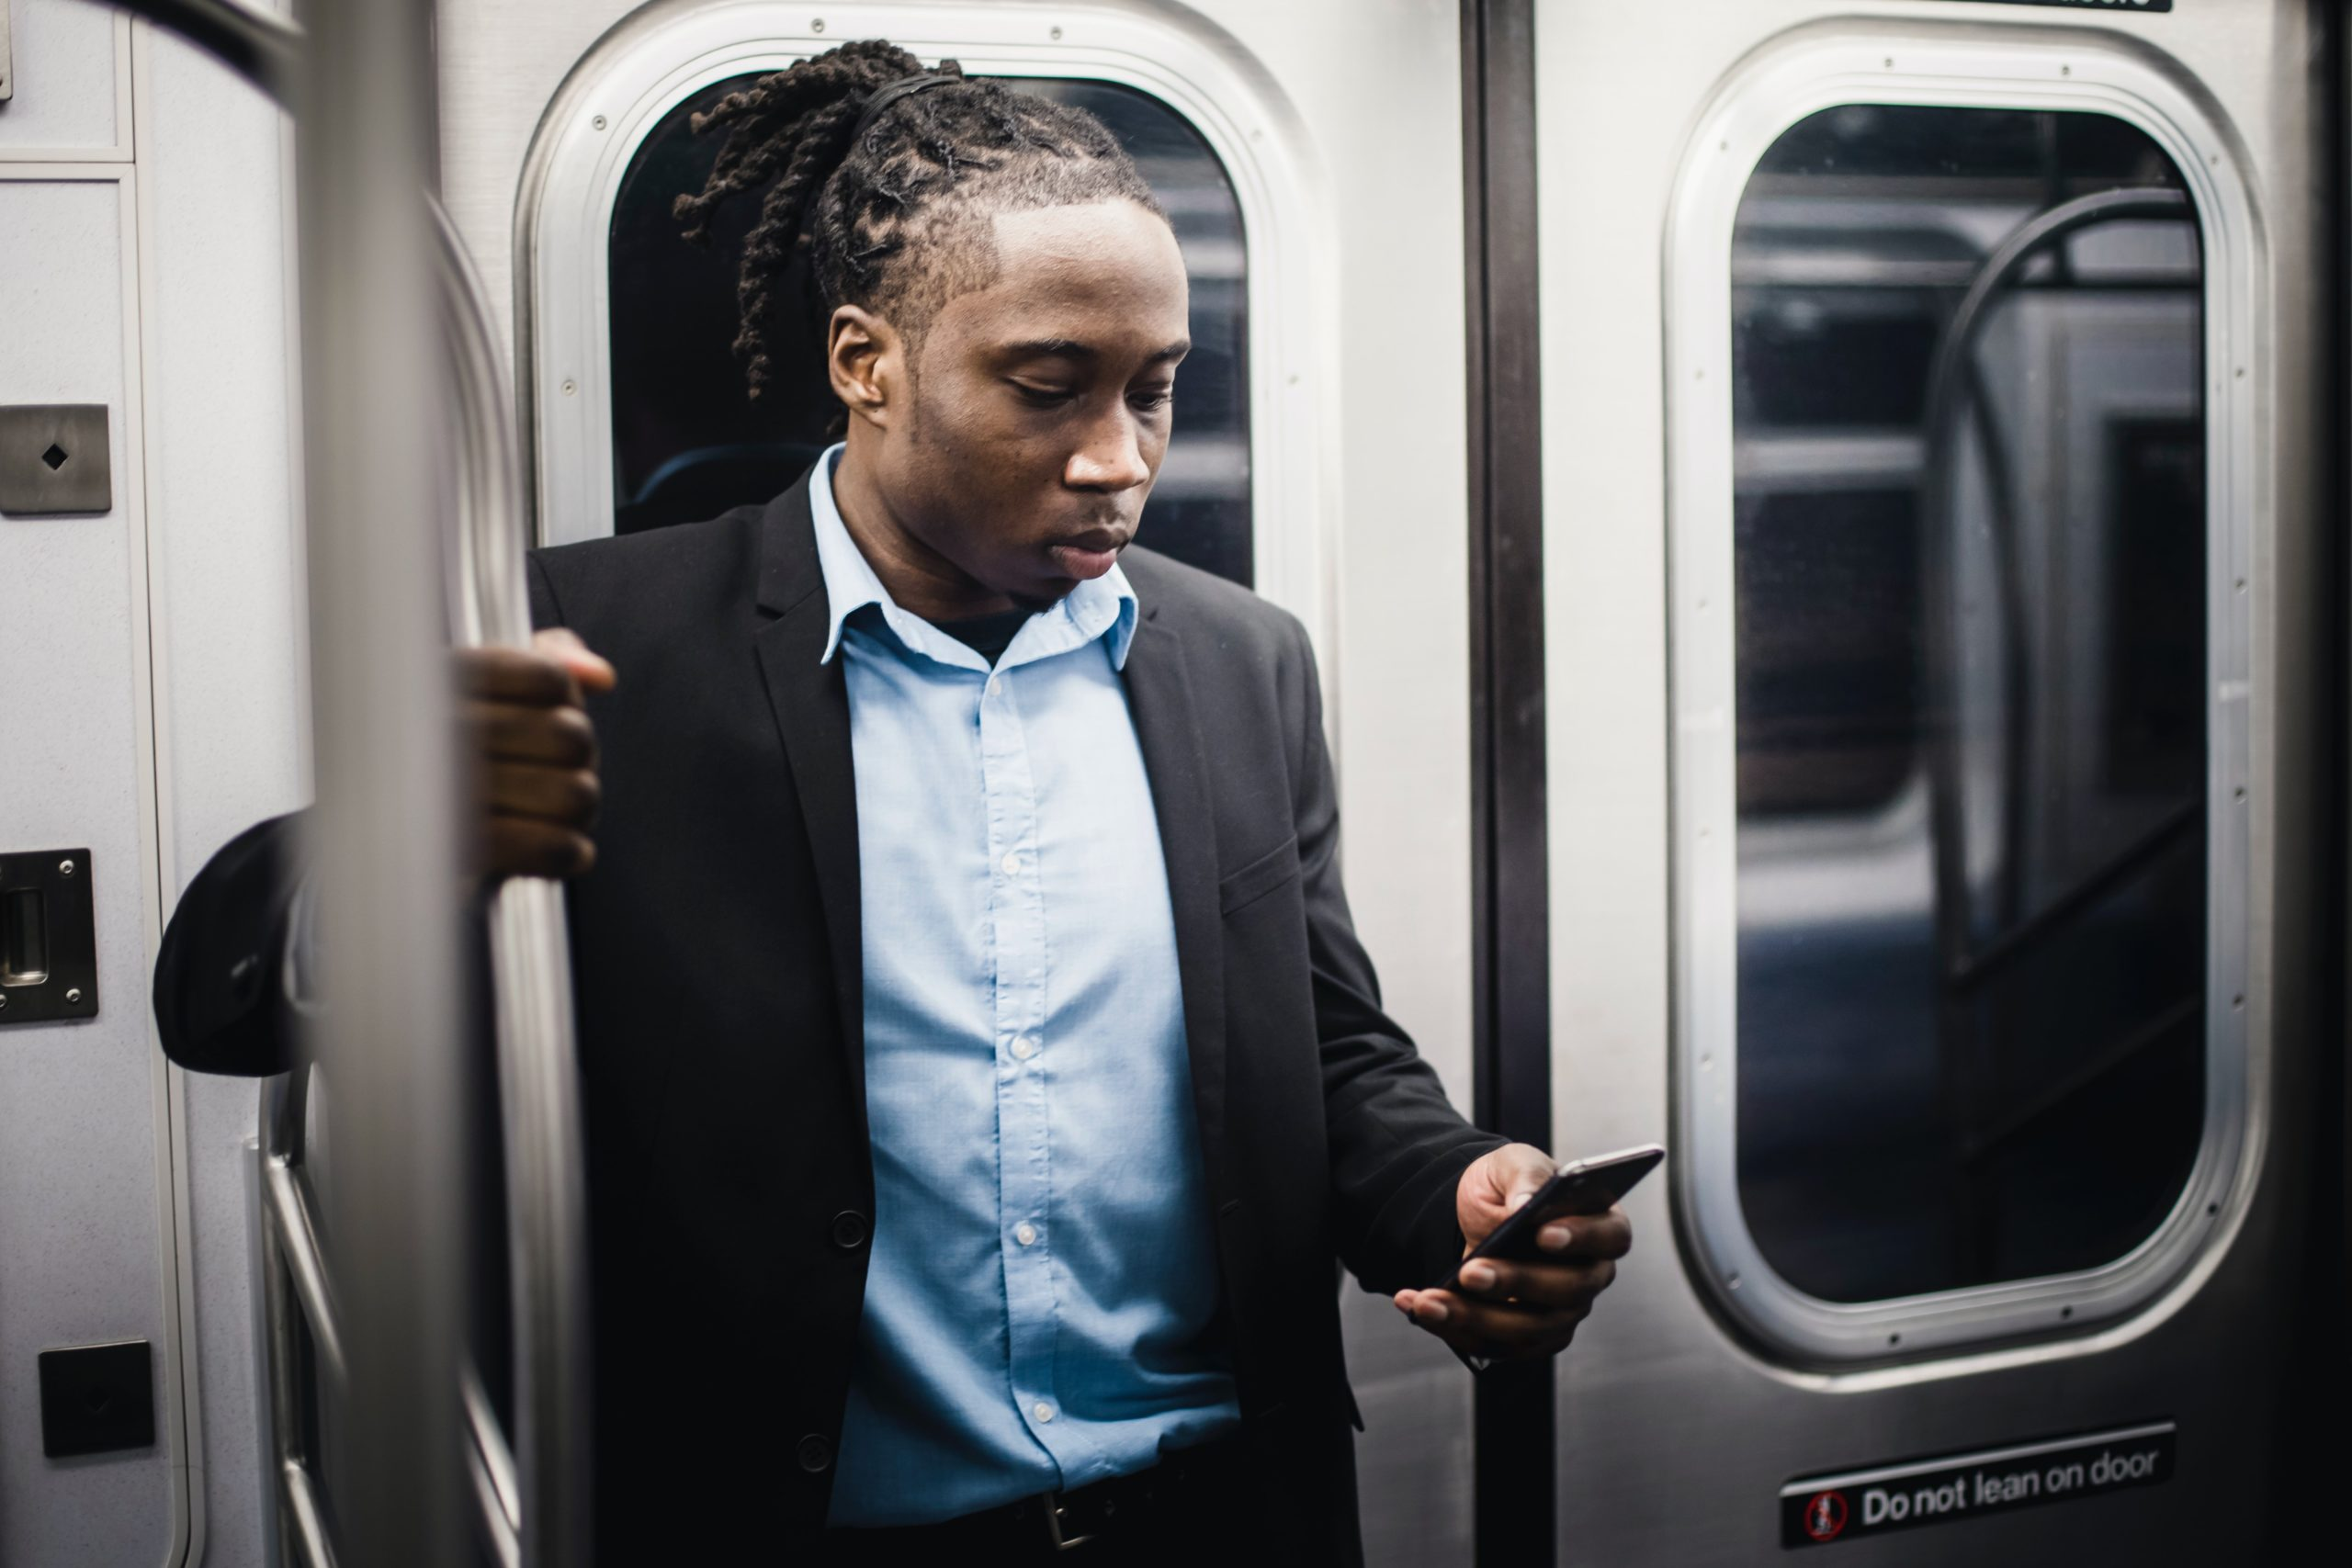 Business phones on the train - what a time to be alive